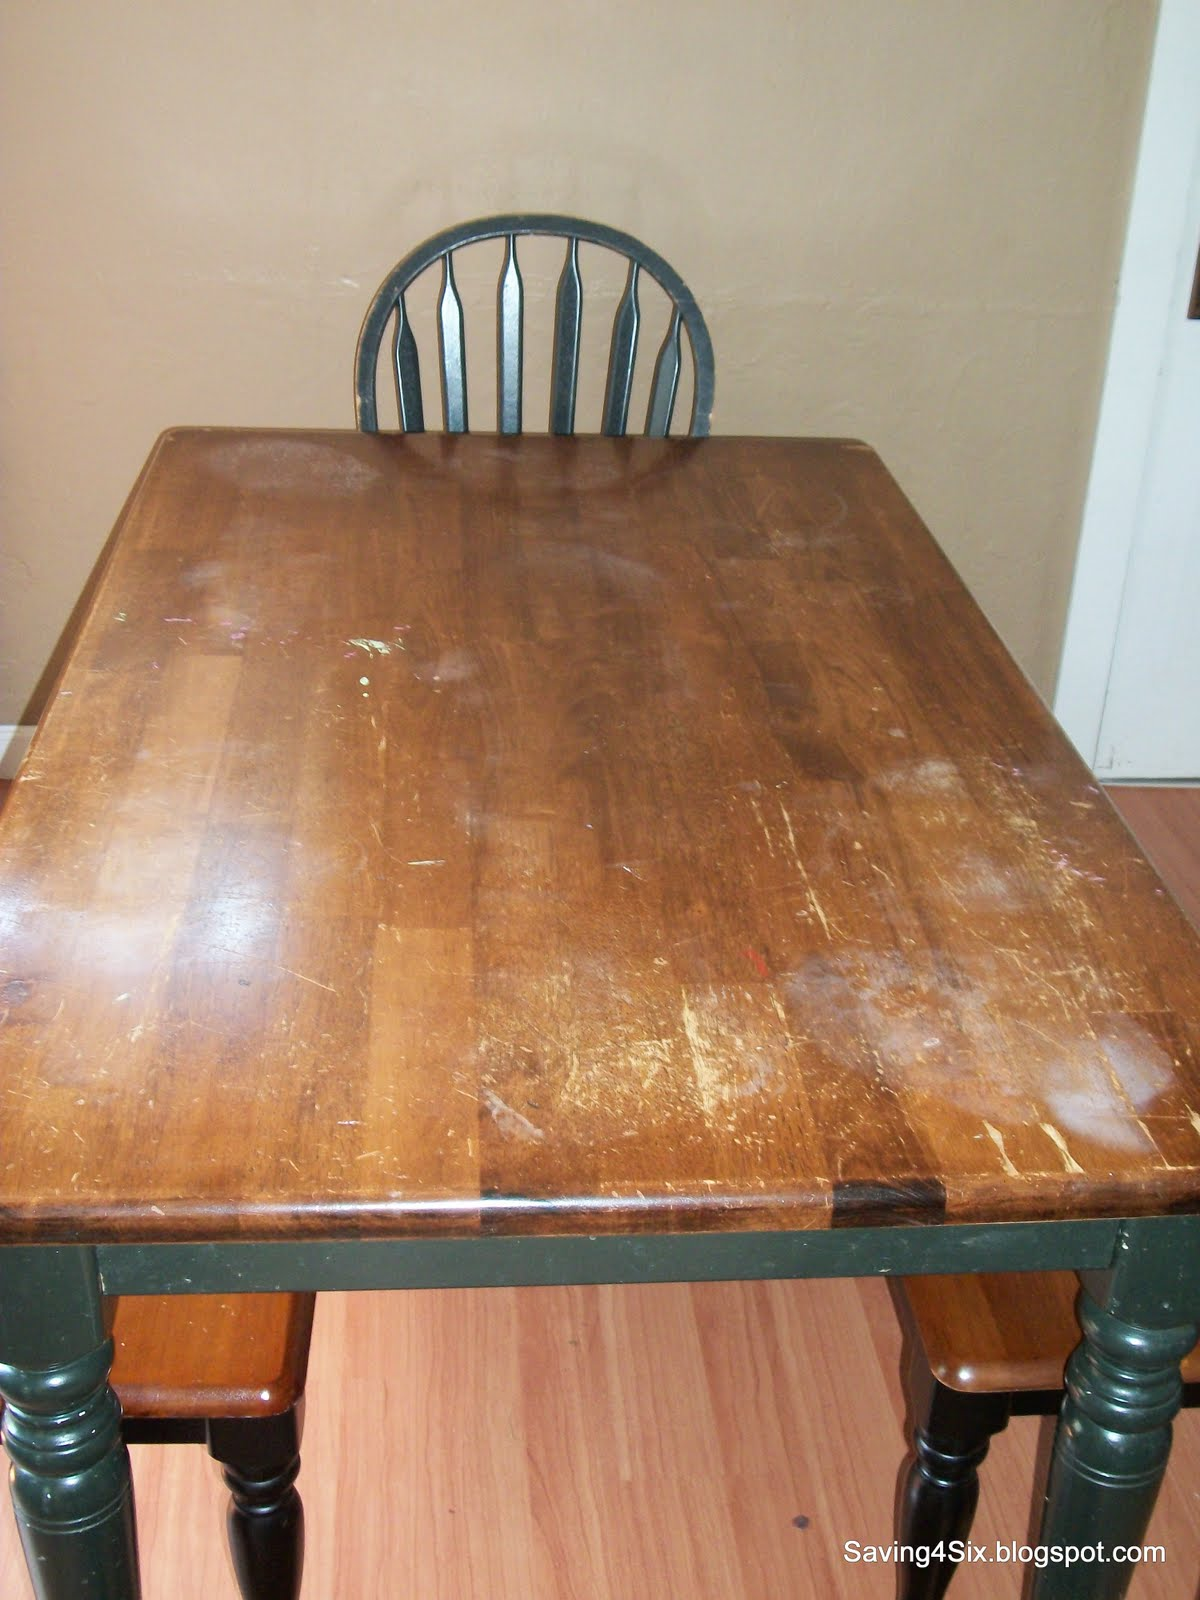 Refinishing The Dining Room Table : 3040832 from saving4six.com size 1200 x 1600 jpeg 163kB